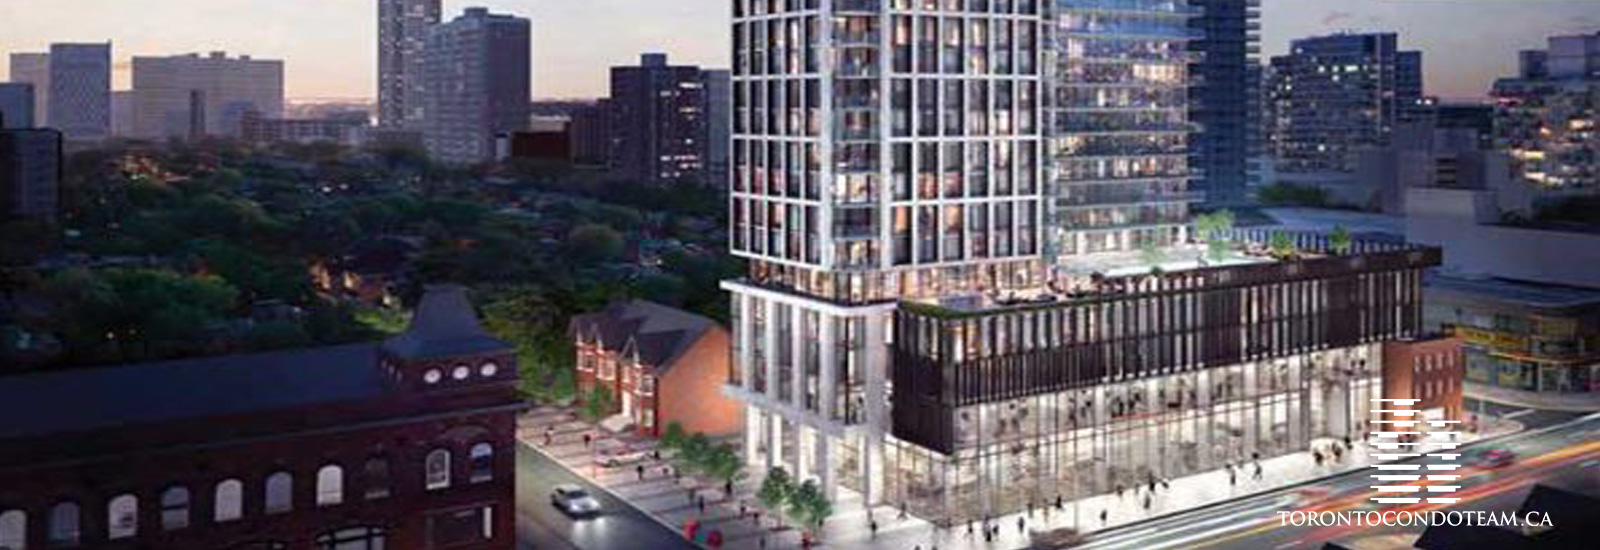 595 Yonge Street Condos For Sale